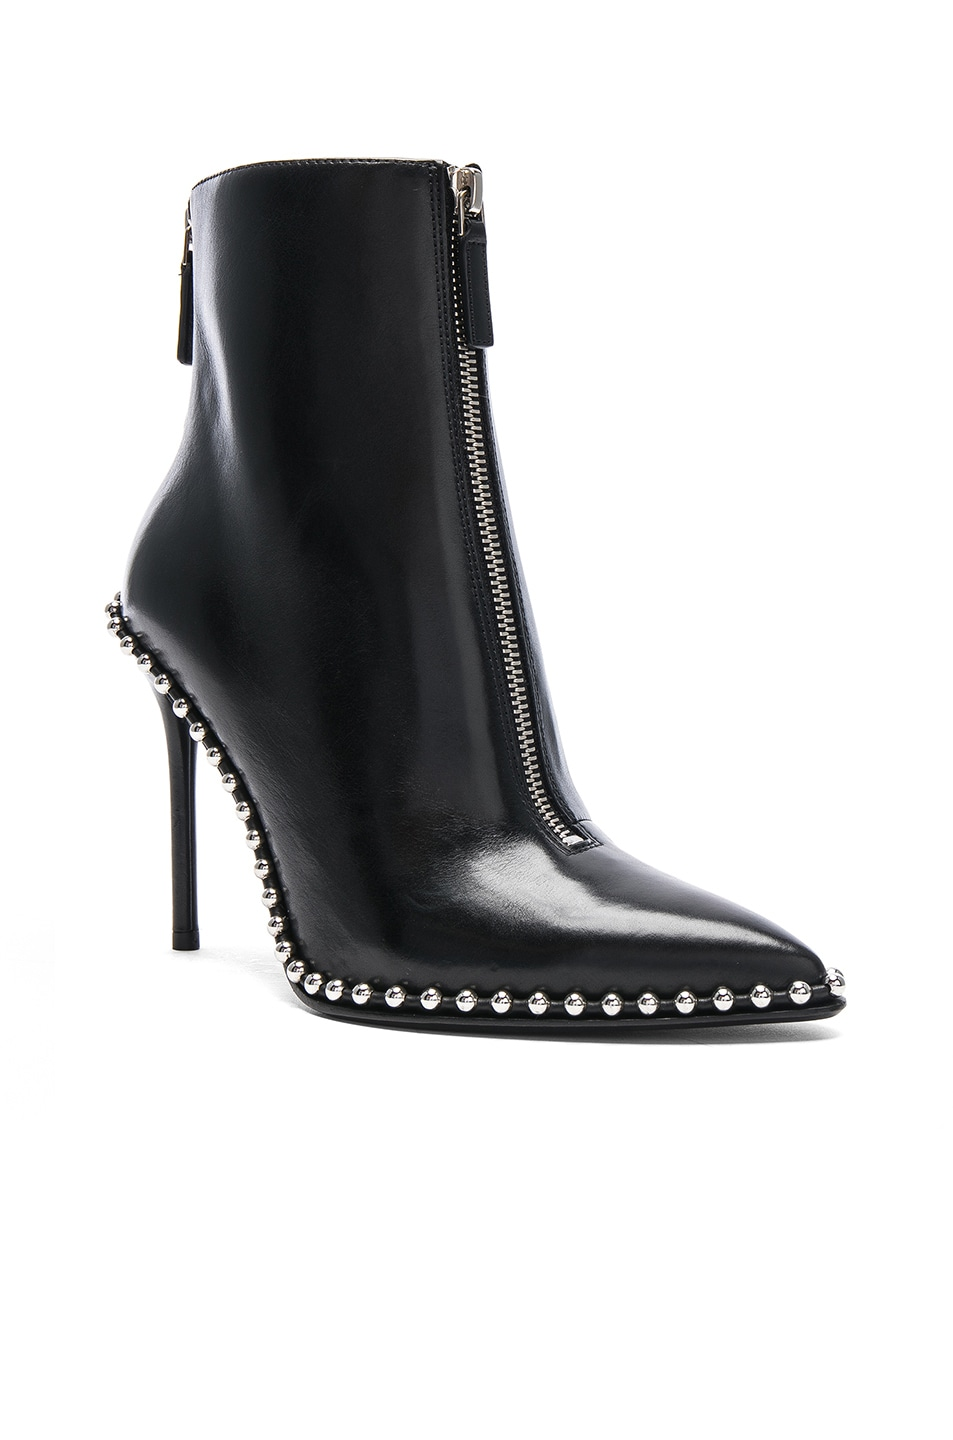 Image 2 of Alexander Wang Leather Eri Boots in Black